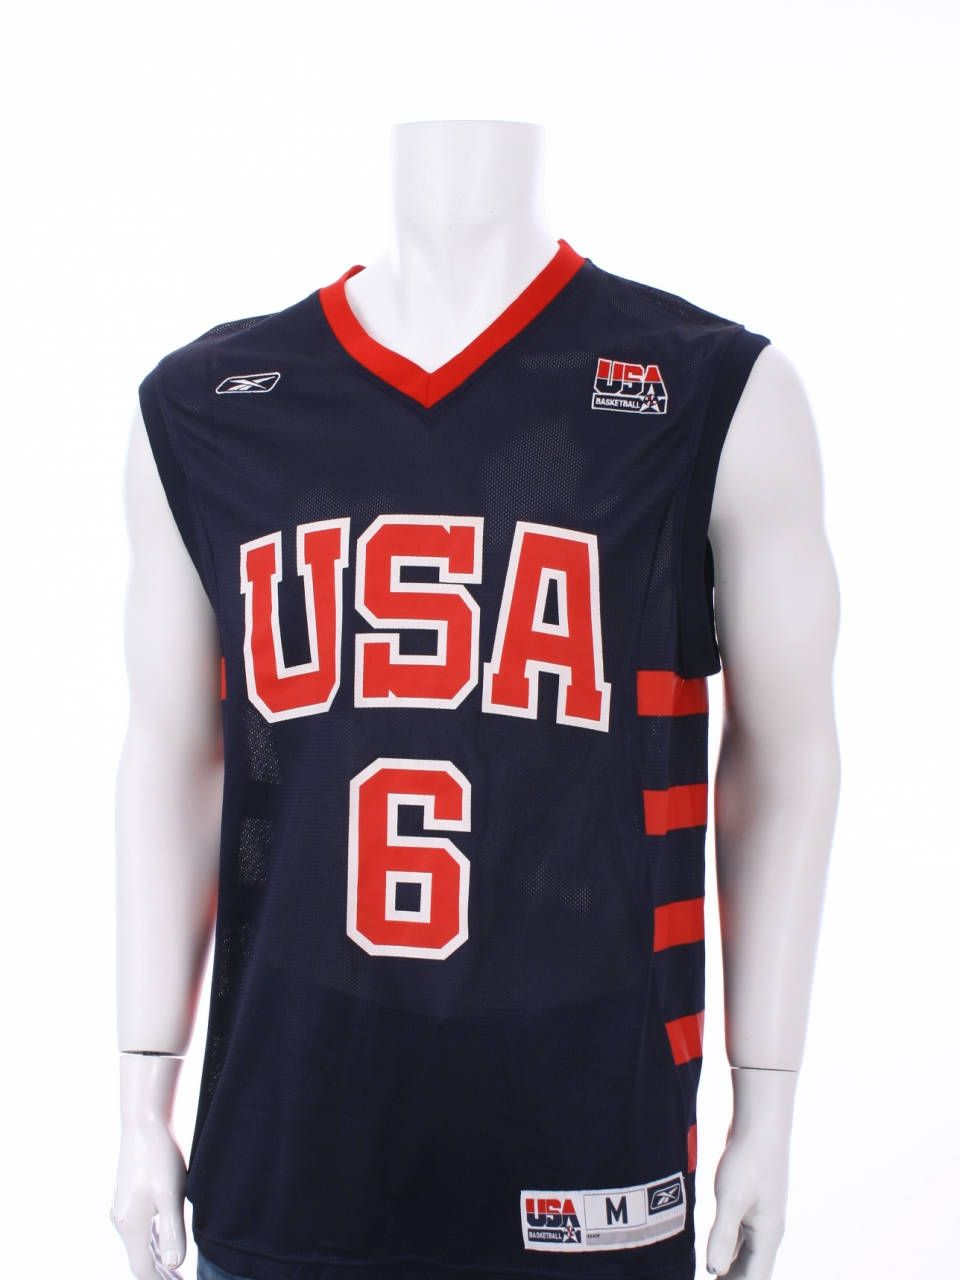 417ca61df07a Vintage Tracy McGrady  6 USA Olympic Dream Team Basketball Reebok Jersey  Size M by VapeoVintage on Etsy